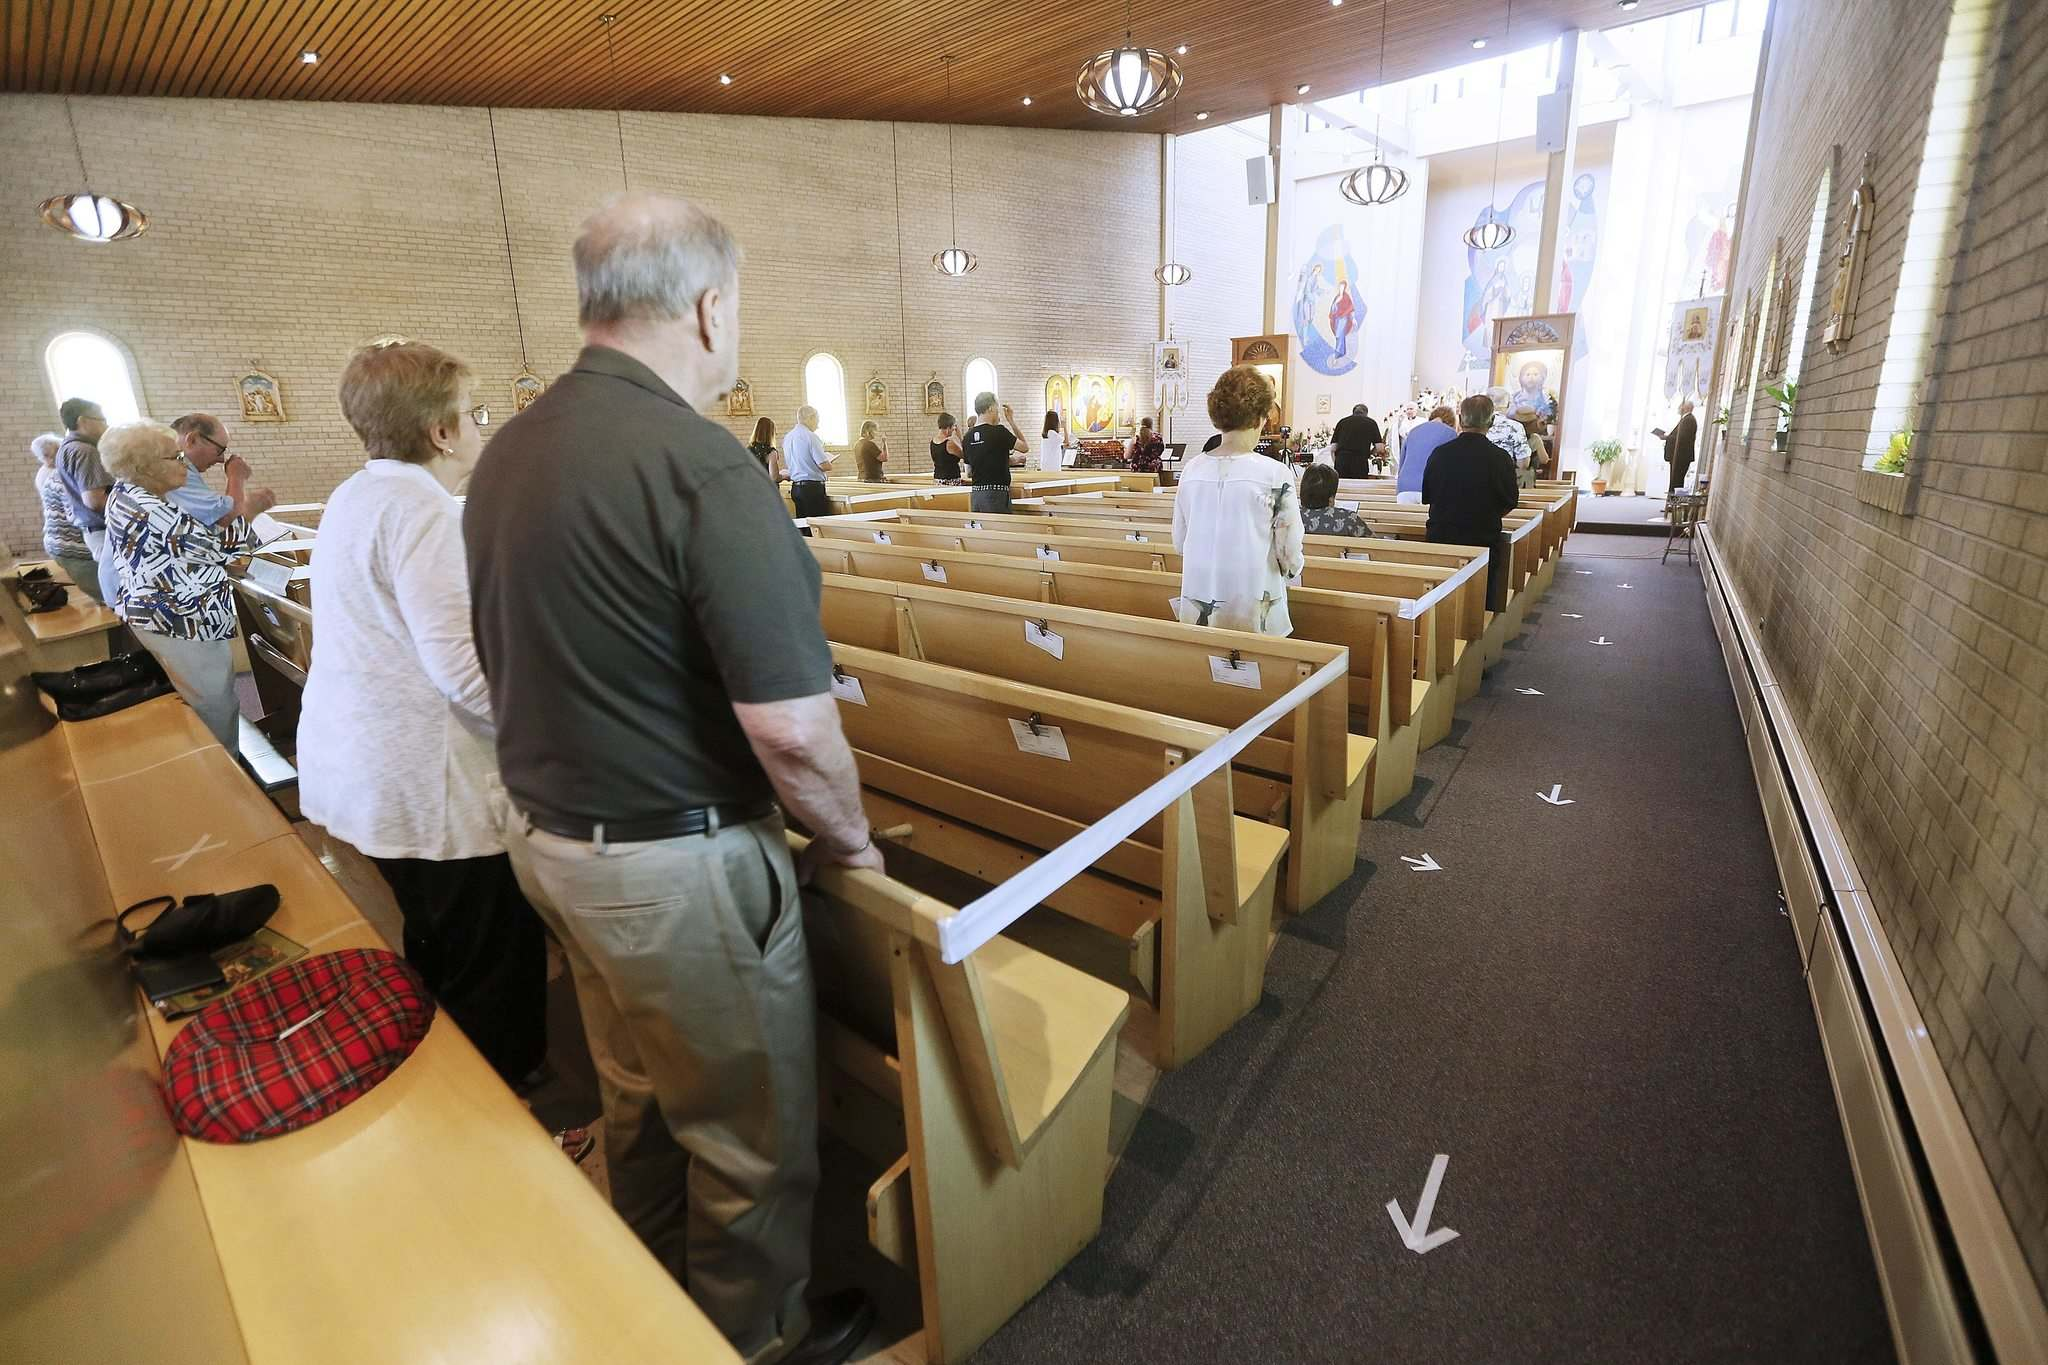 JOHN WOODS / WINNIPEG FREE PRESS</p><p>Due to COVID-19 restrictions attendance at the Sunday mass at Holy Family Church in Winnipeg was limited.</p>